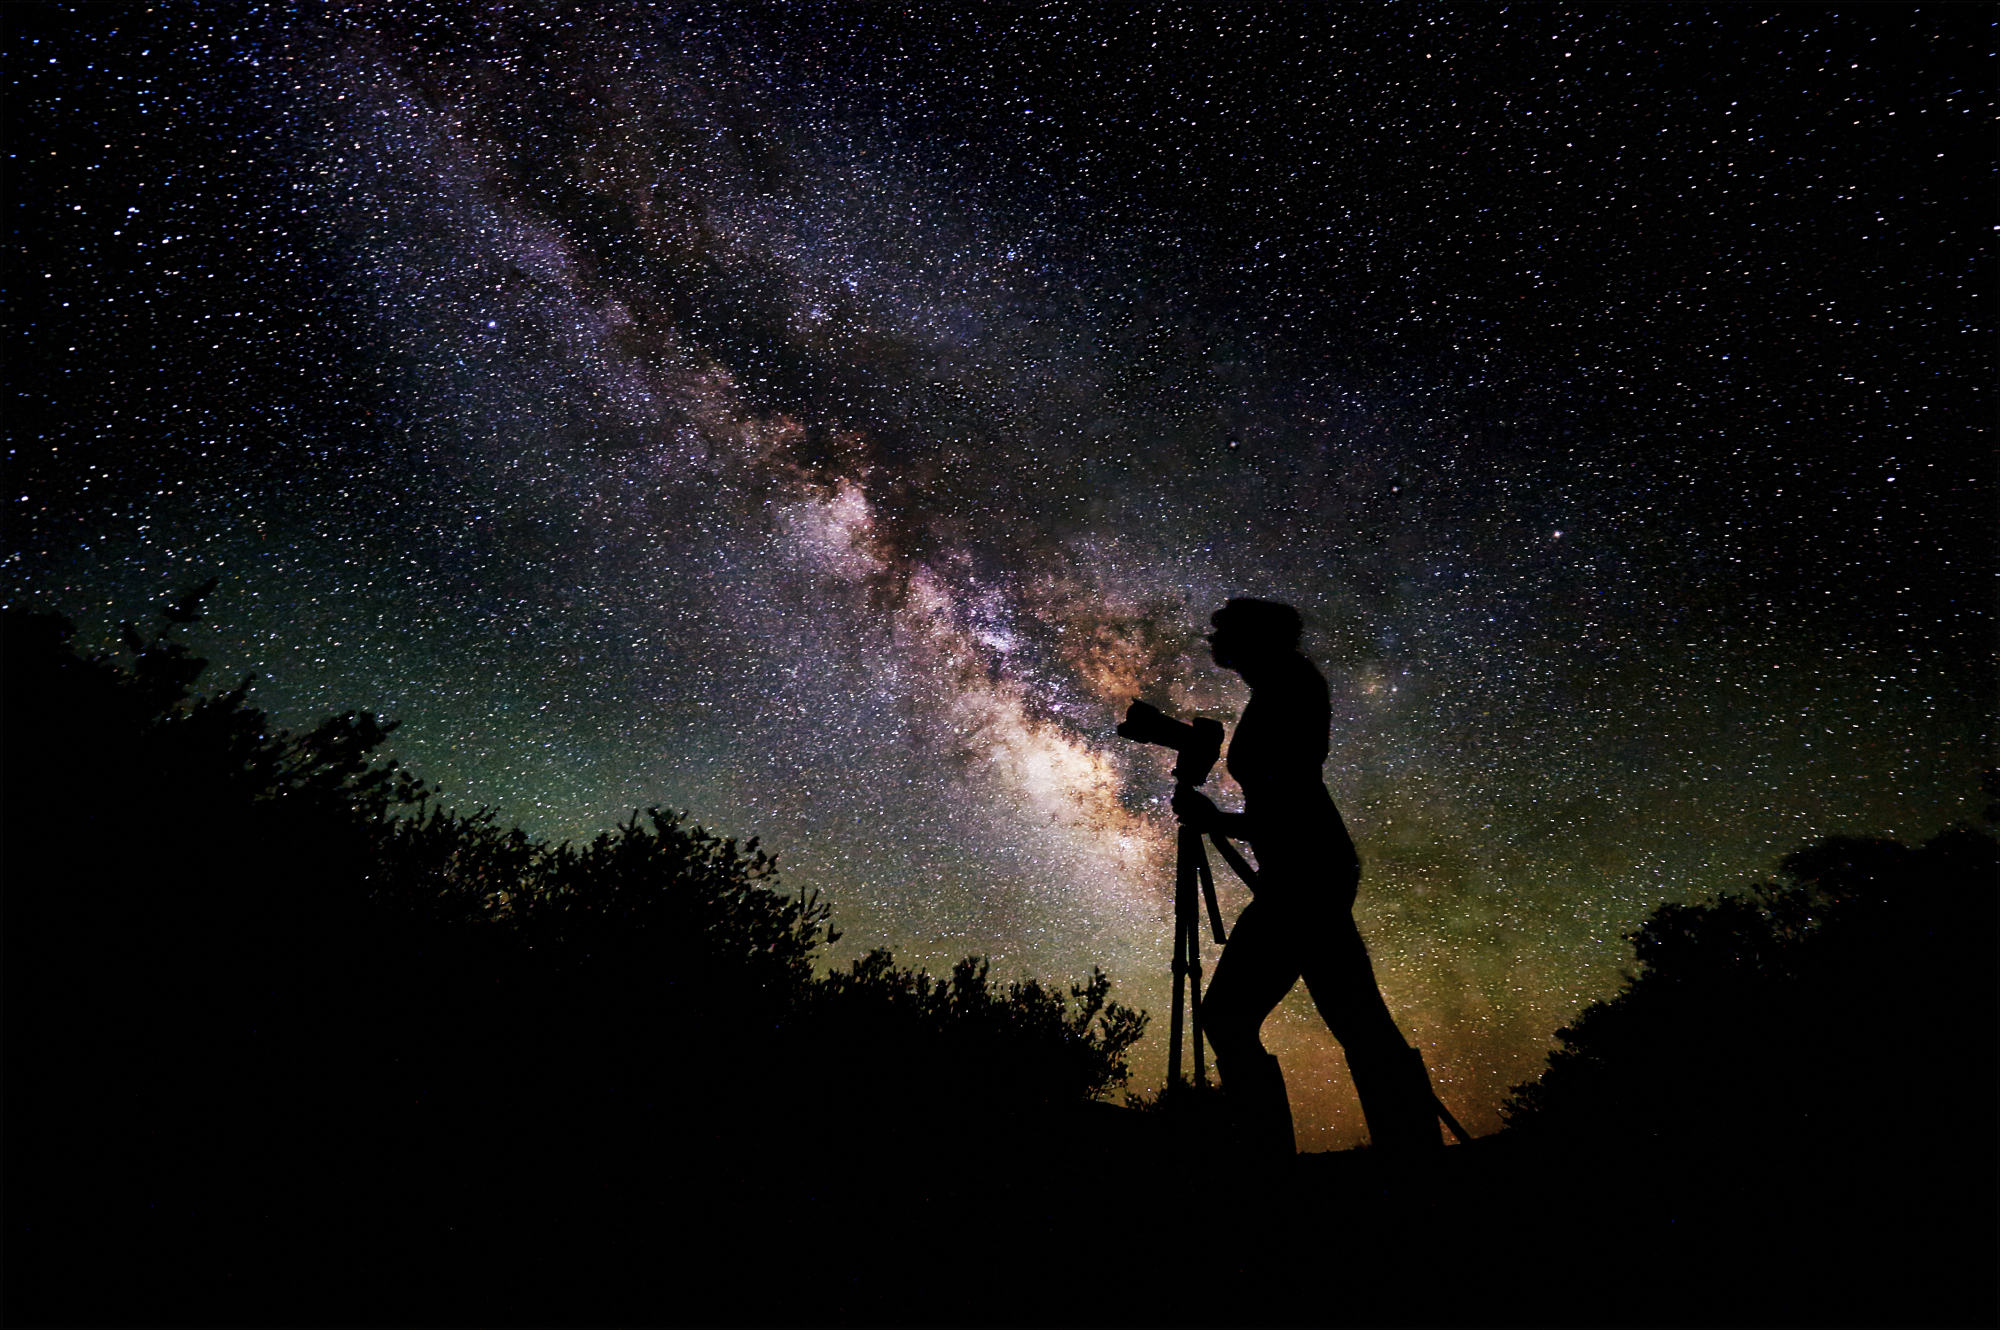 Photographer silhouetted against the milky way.